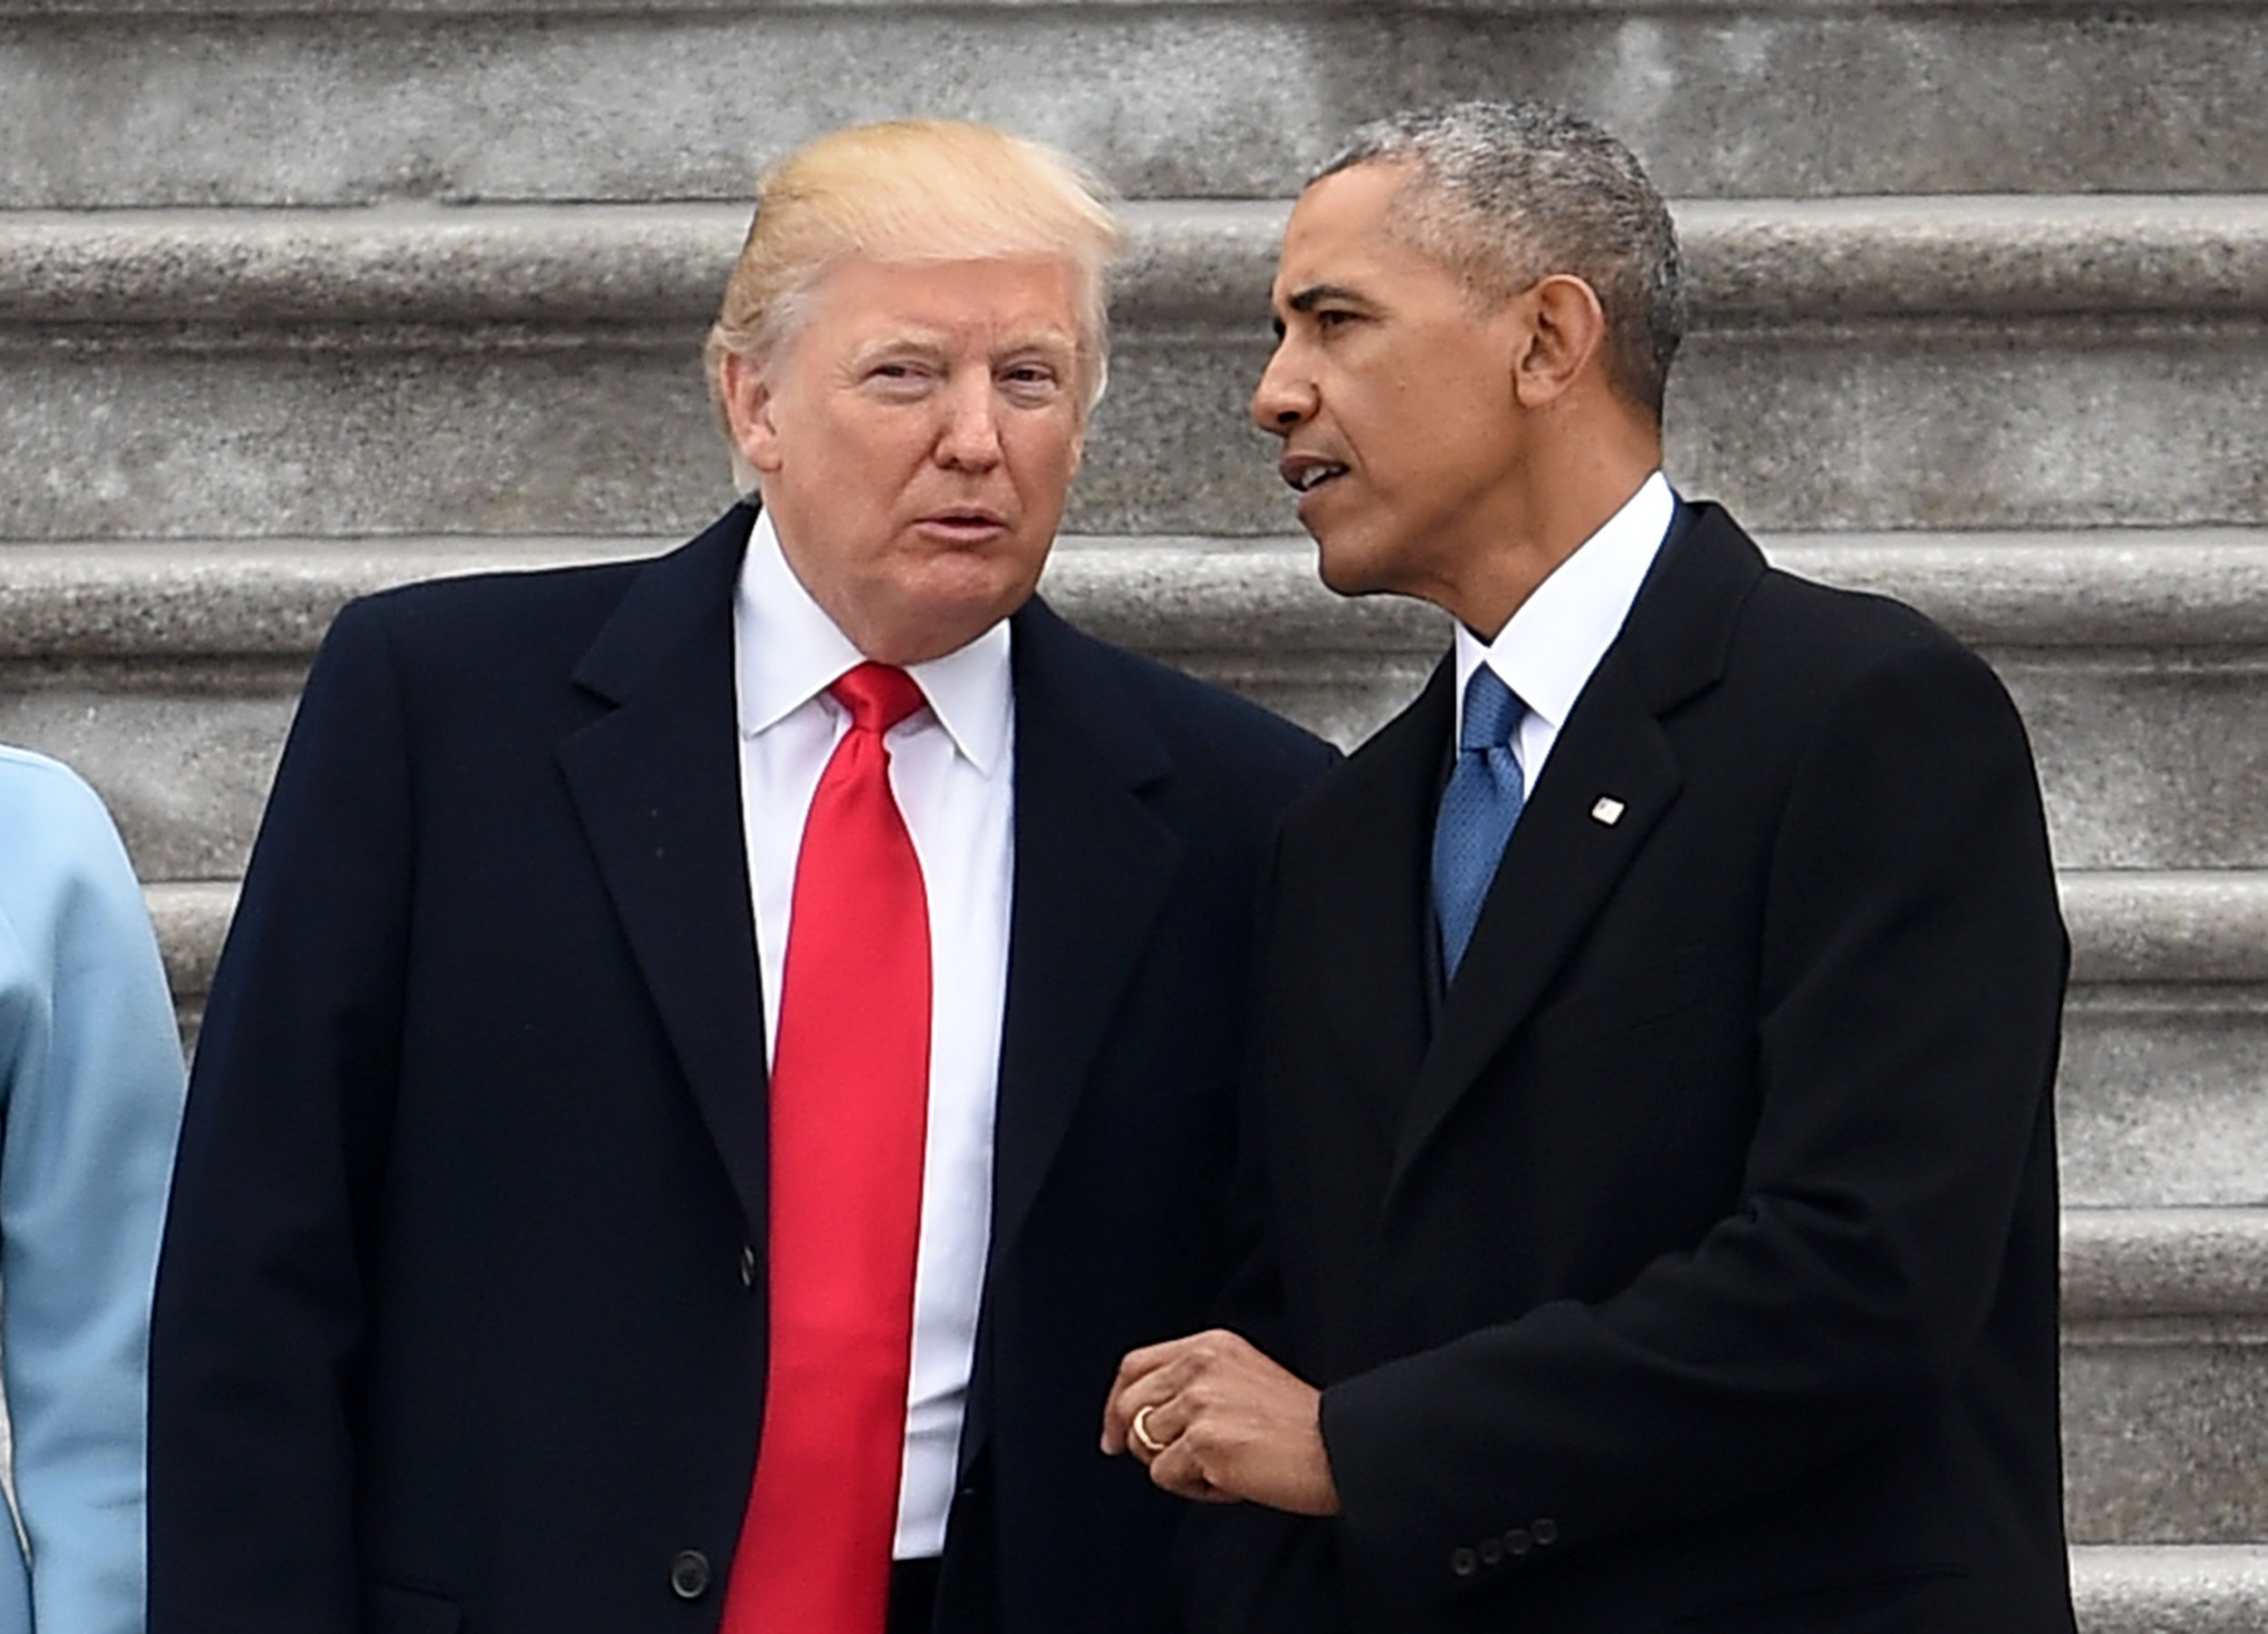 President Donald Trump and former President Barack Obama talk on the East front steps of the US Capitol after inauguration ceremonies on January 20, 2017 in Washington, D.C. (Robyn Beck/AFP)